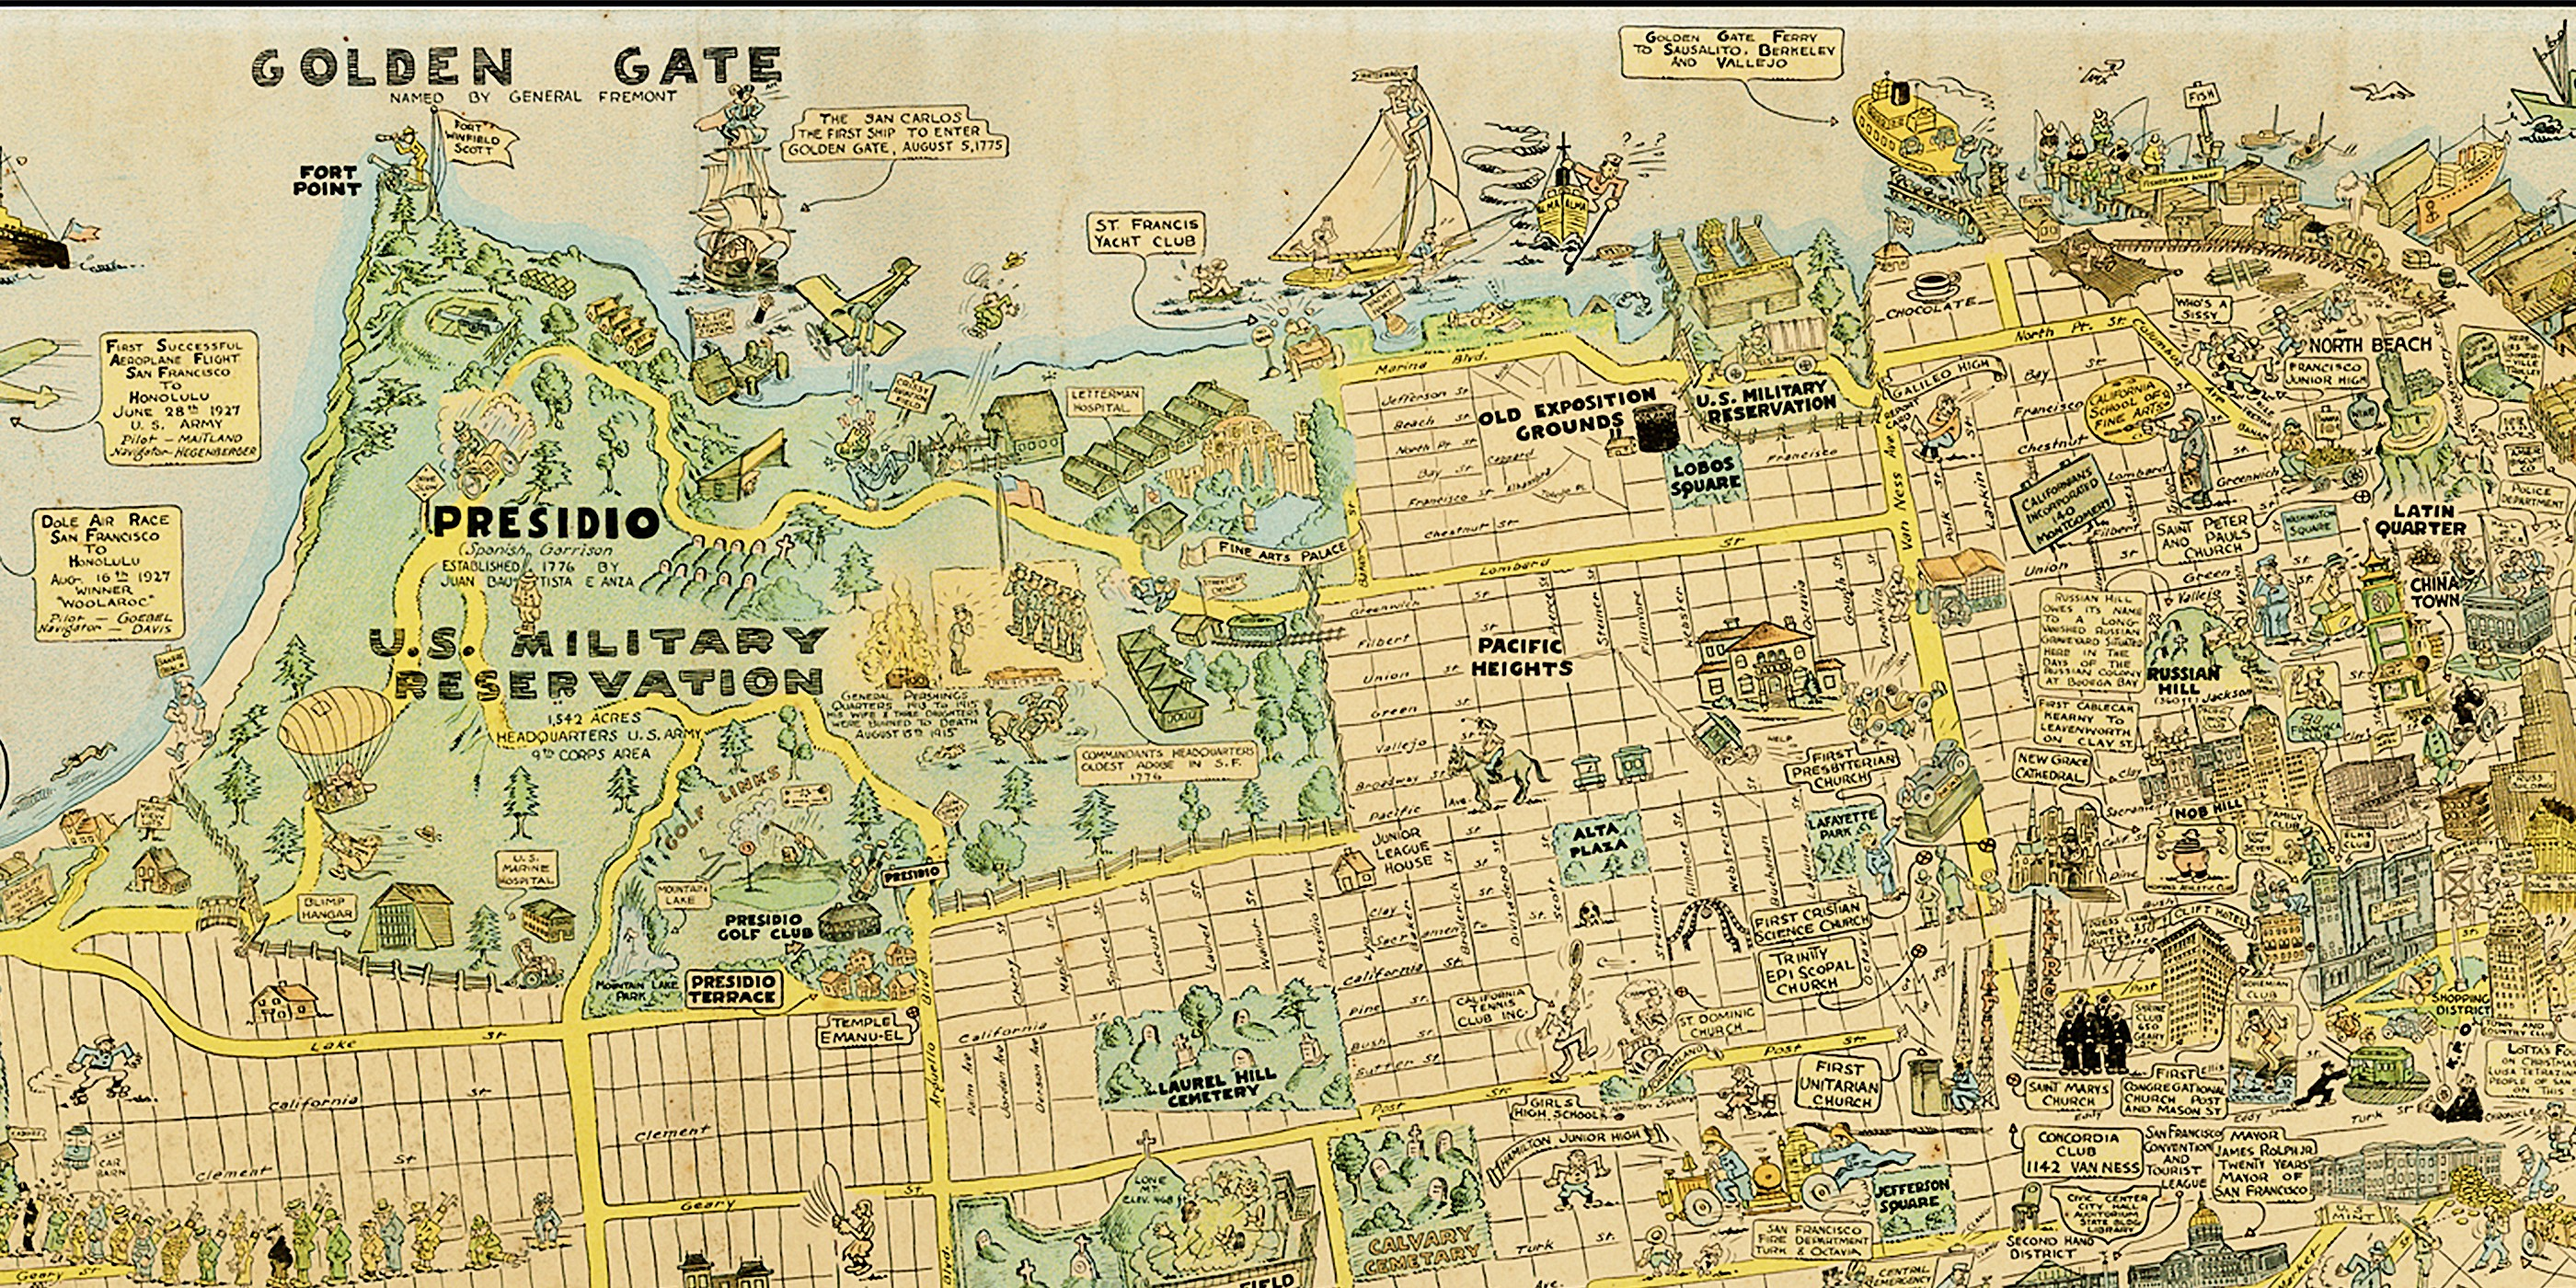 1927 Cartoon Map of SF is Awesome and Adorable — The Bold ... on omaha map, dallas map, london map, new york map, tokyo map, las vegas map, bay area map, san diego, salt lake city map, sydney australia map, boston map, kansas city map, detroit map, northern ca map, california map, berkeley map, usa map, new orleans map, golden gate park map, united states map, los angeles map, chicago map, sausalito map,